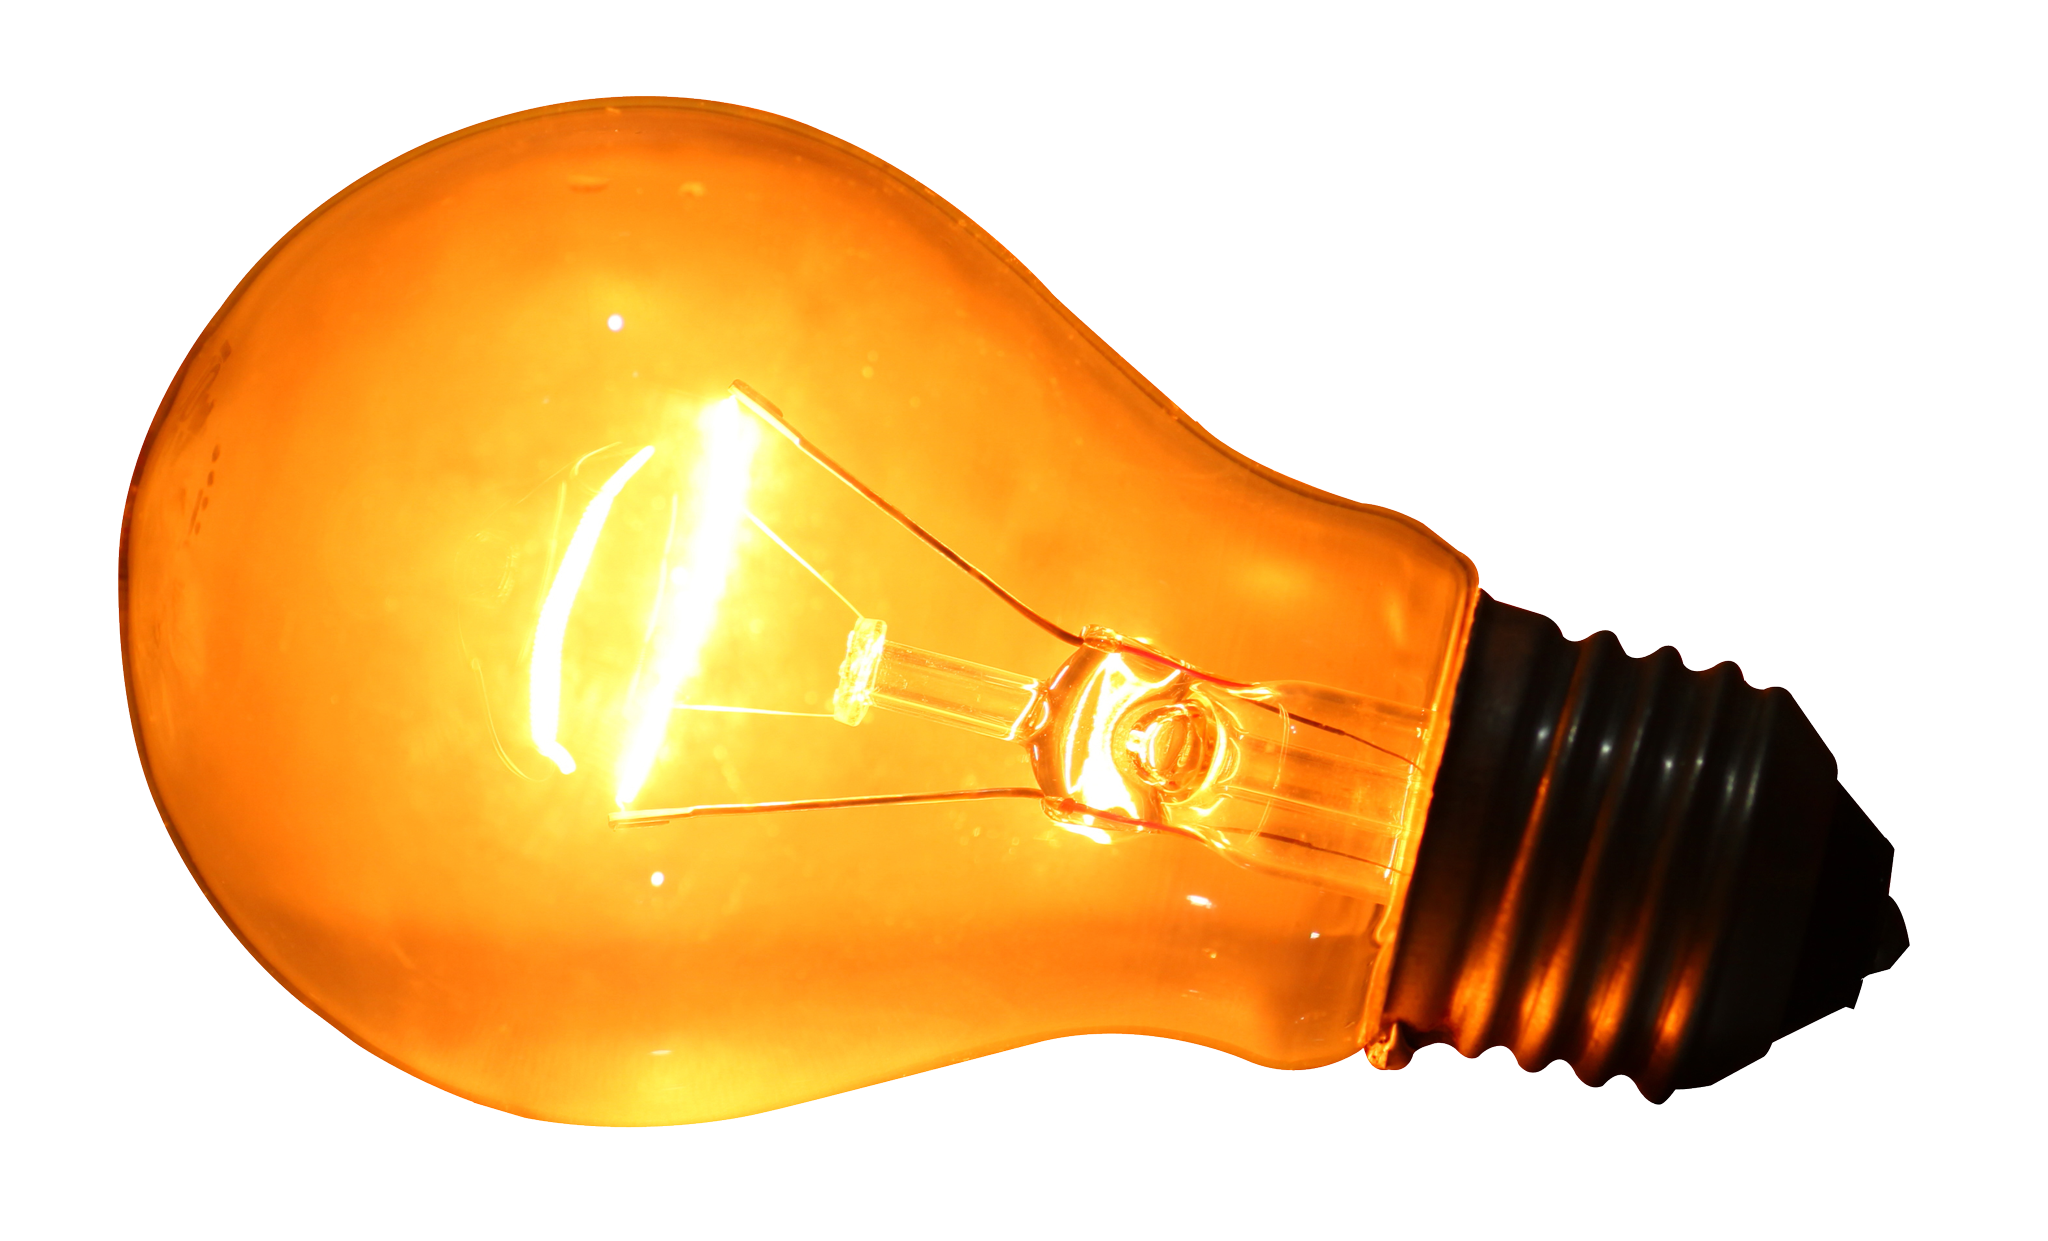 Light Bulb PNG Transparent Image - PNG HD Light Bulb